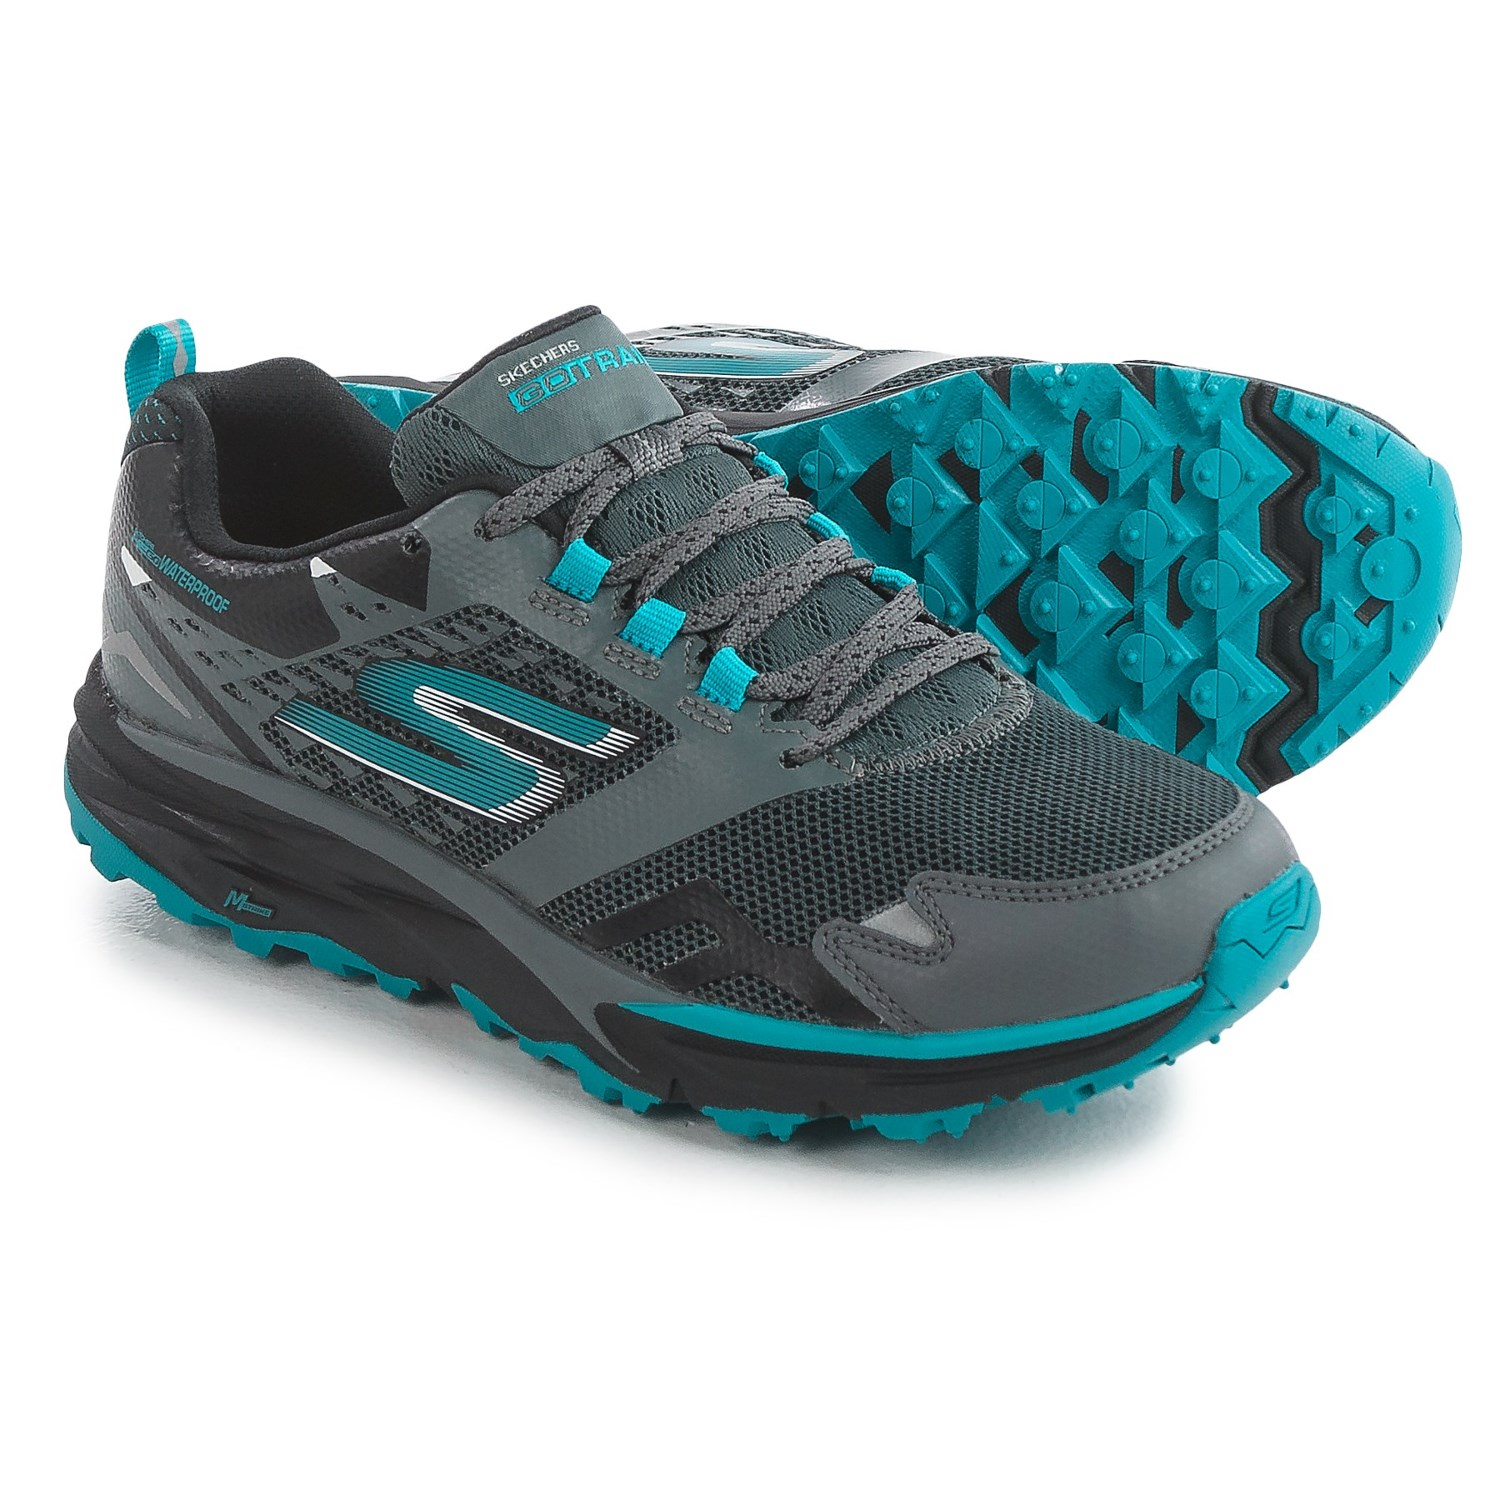 Skechers Mens Running Shoes India